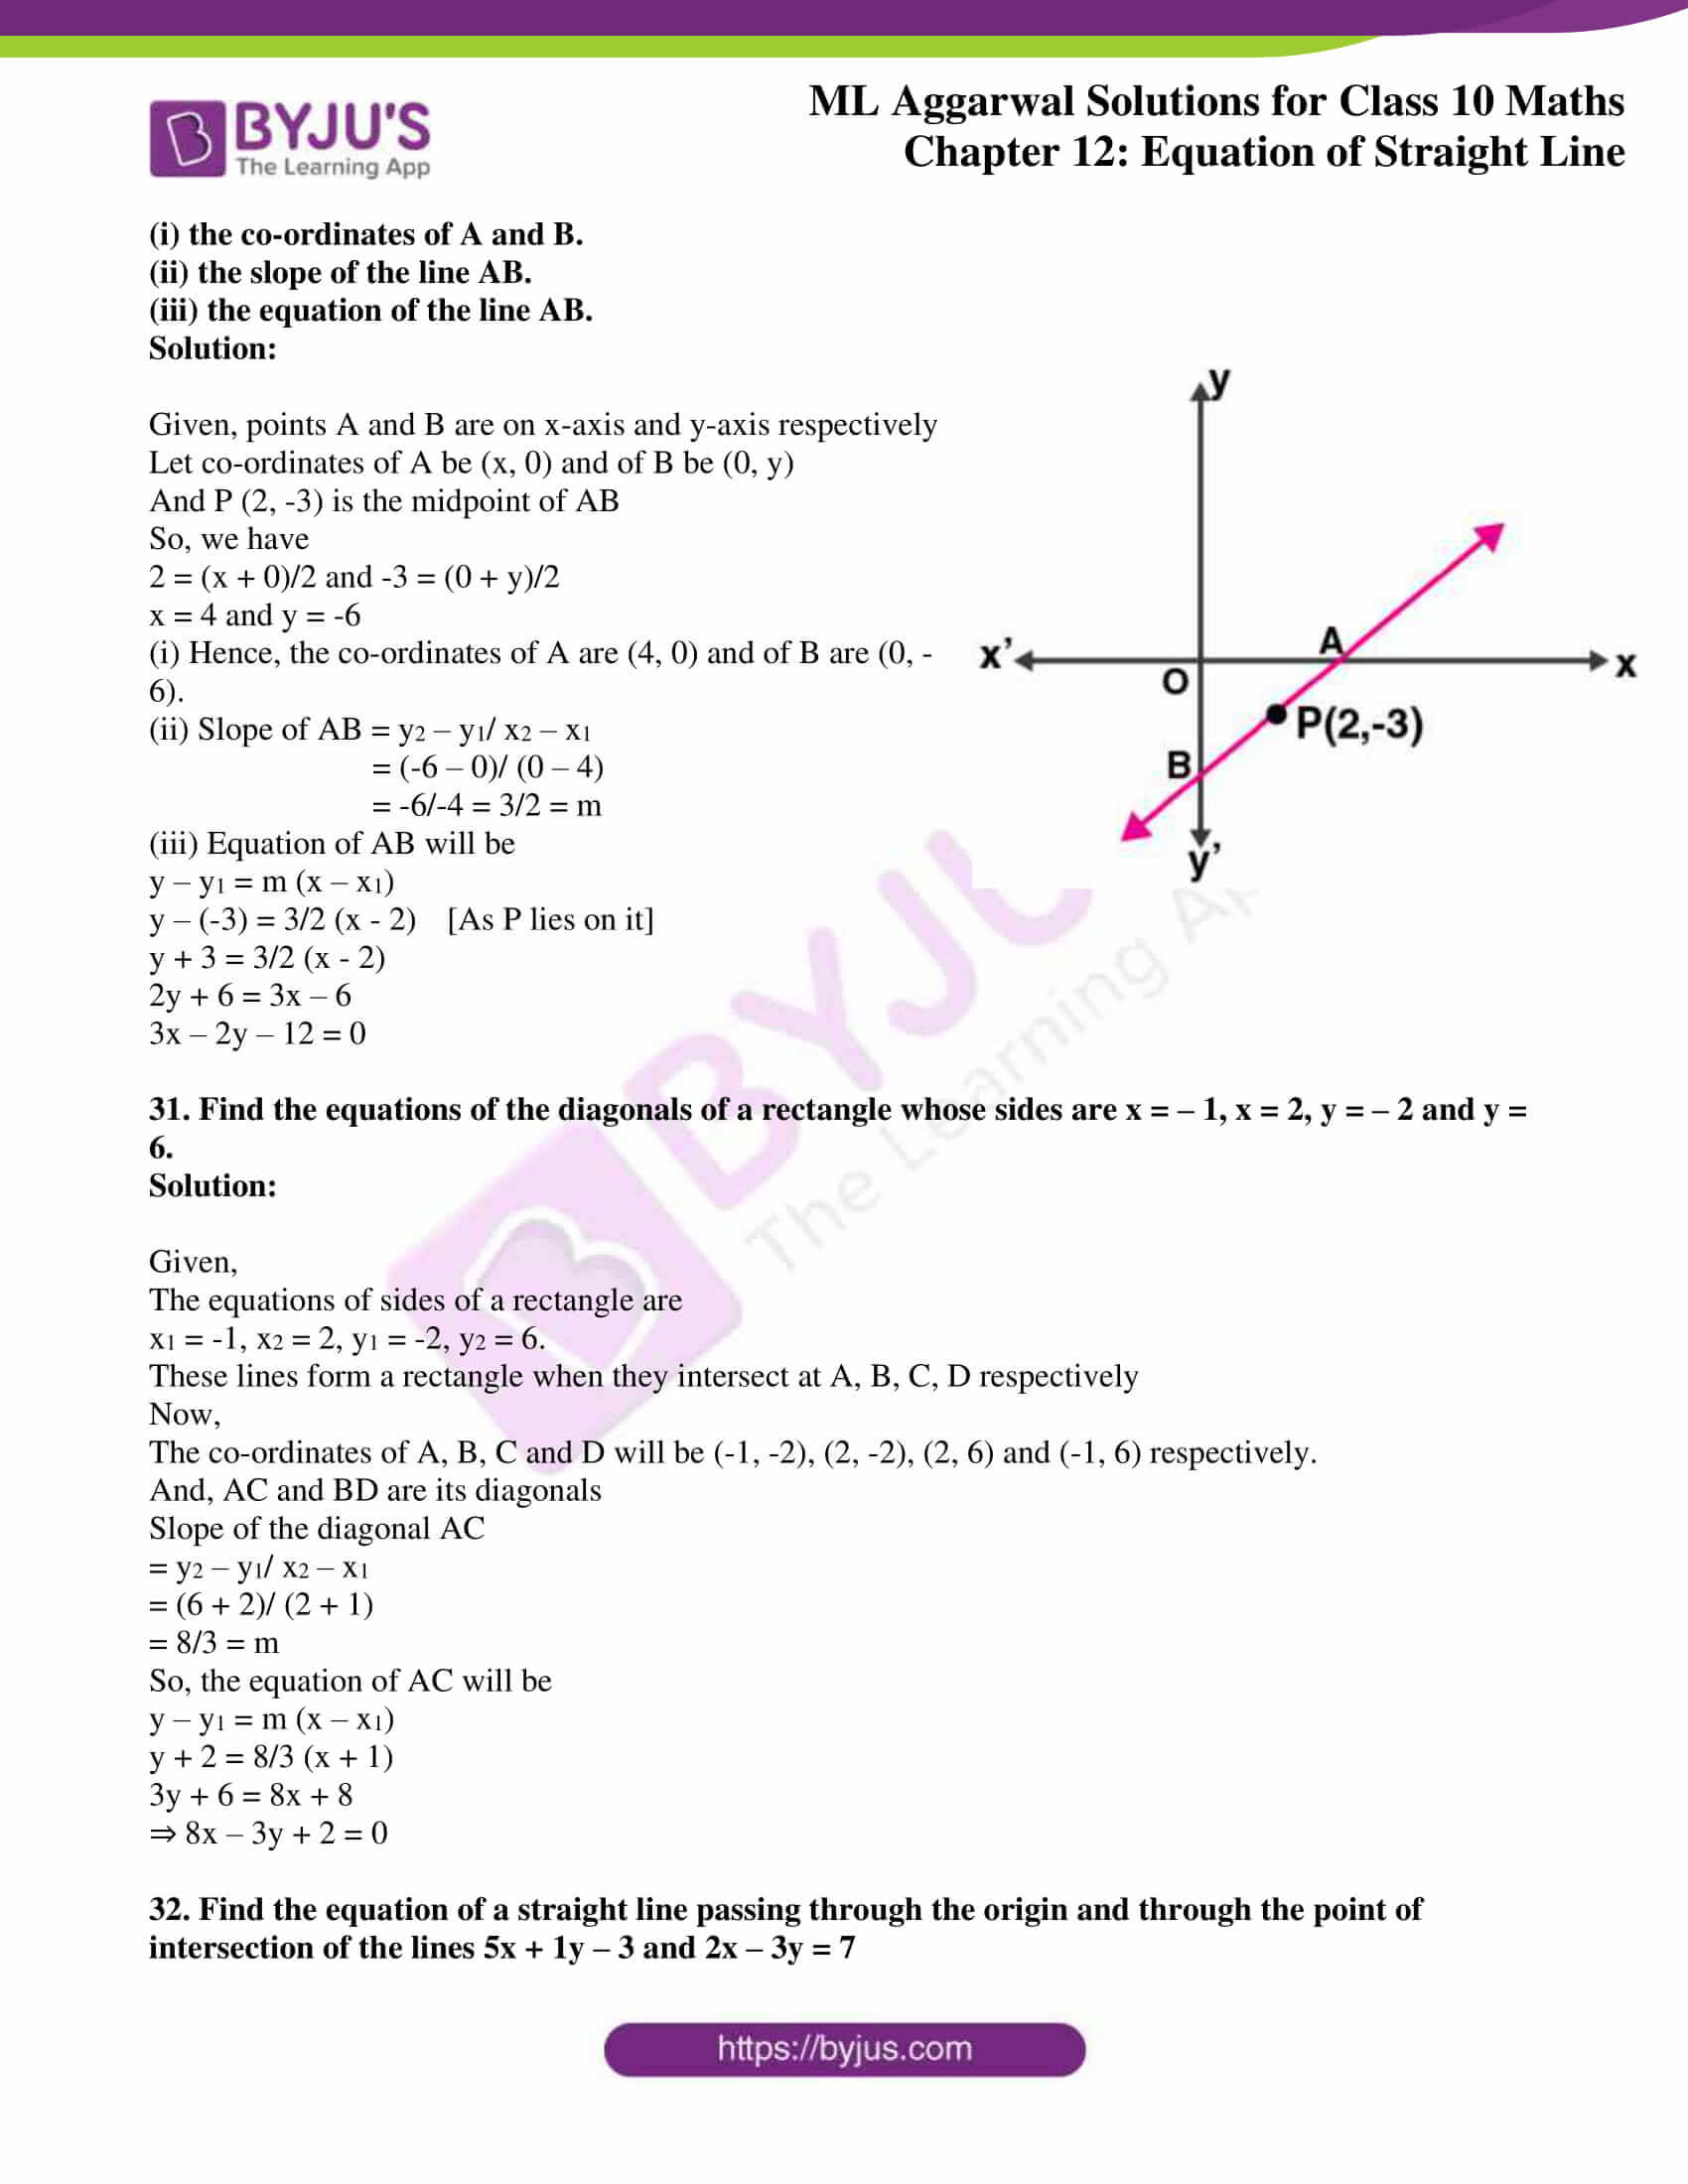 ml aggarwal solutions for class 10 maths chapter 12 13